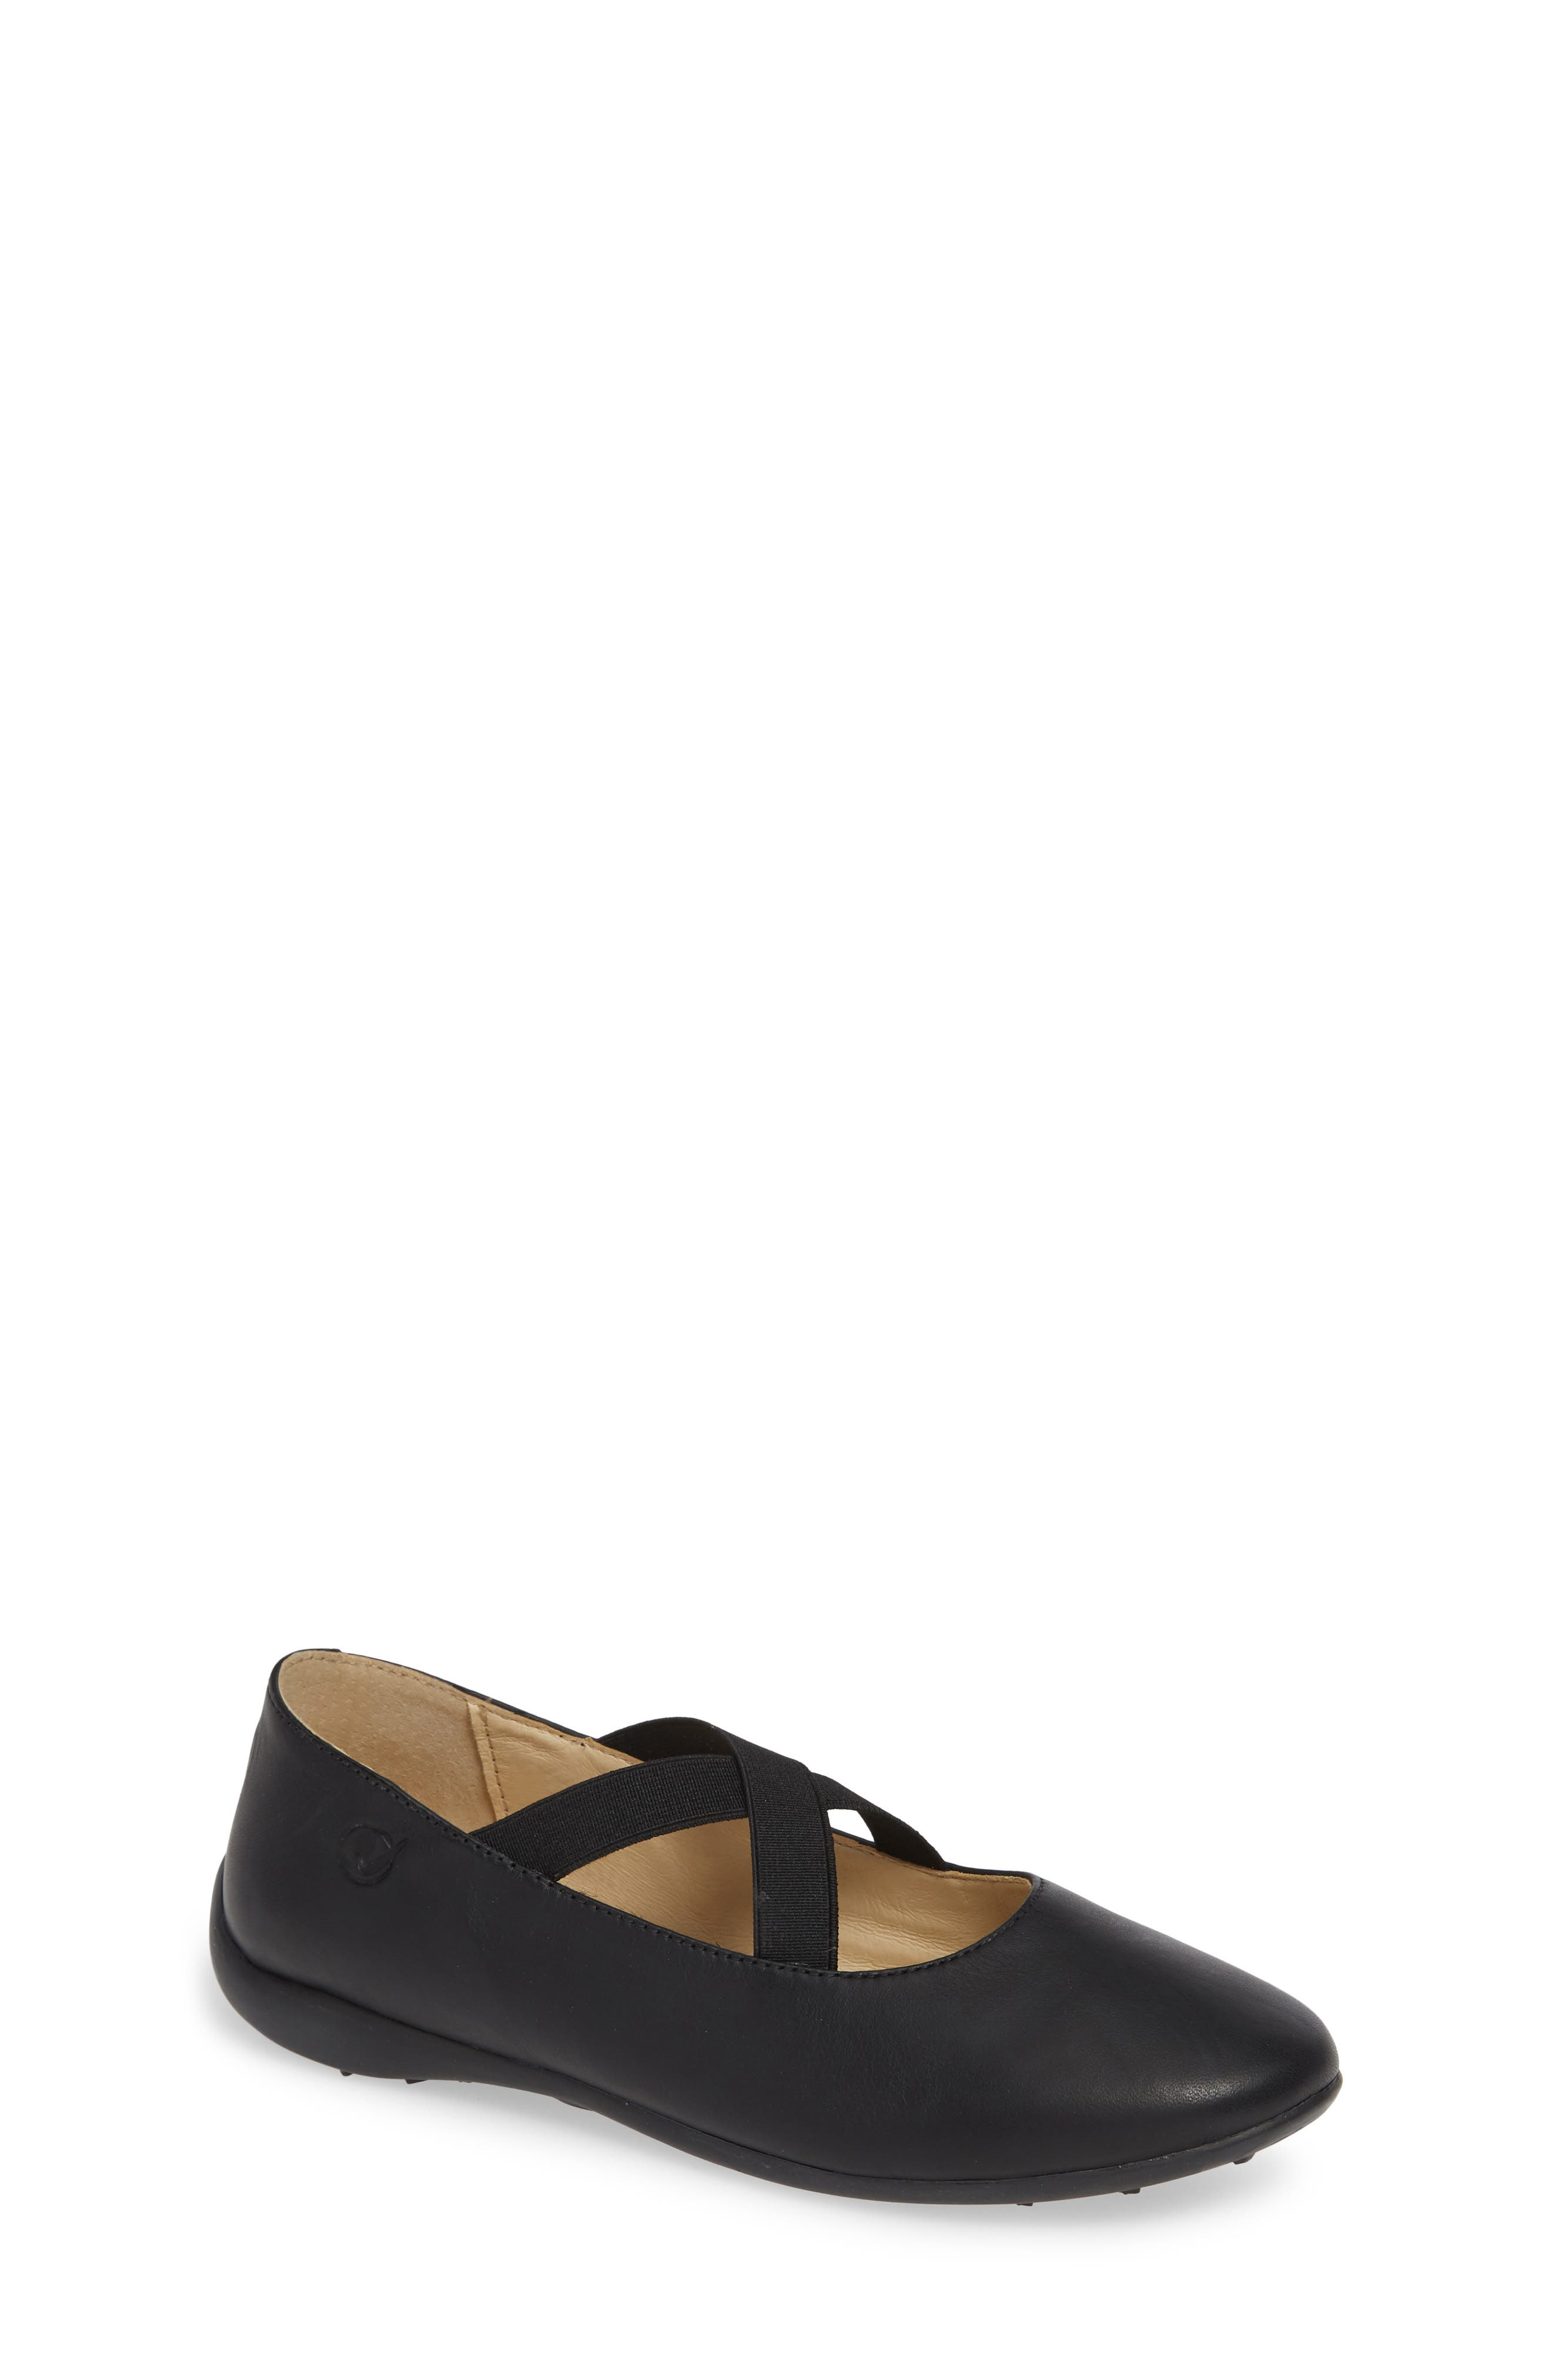 Matera Ballet Flat,                         Main,                         color, BLACK LEATHER